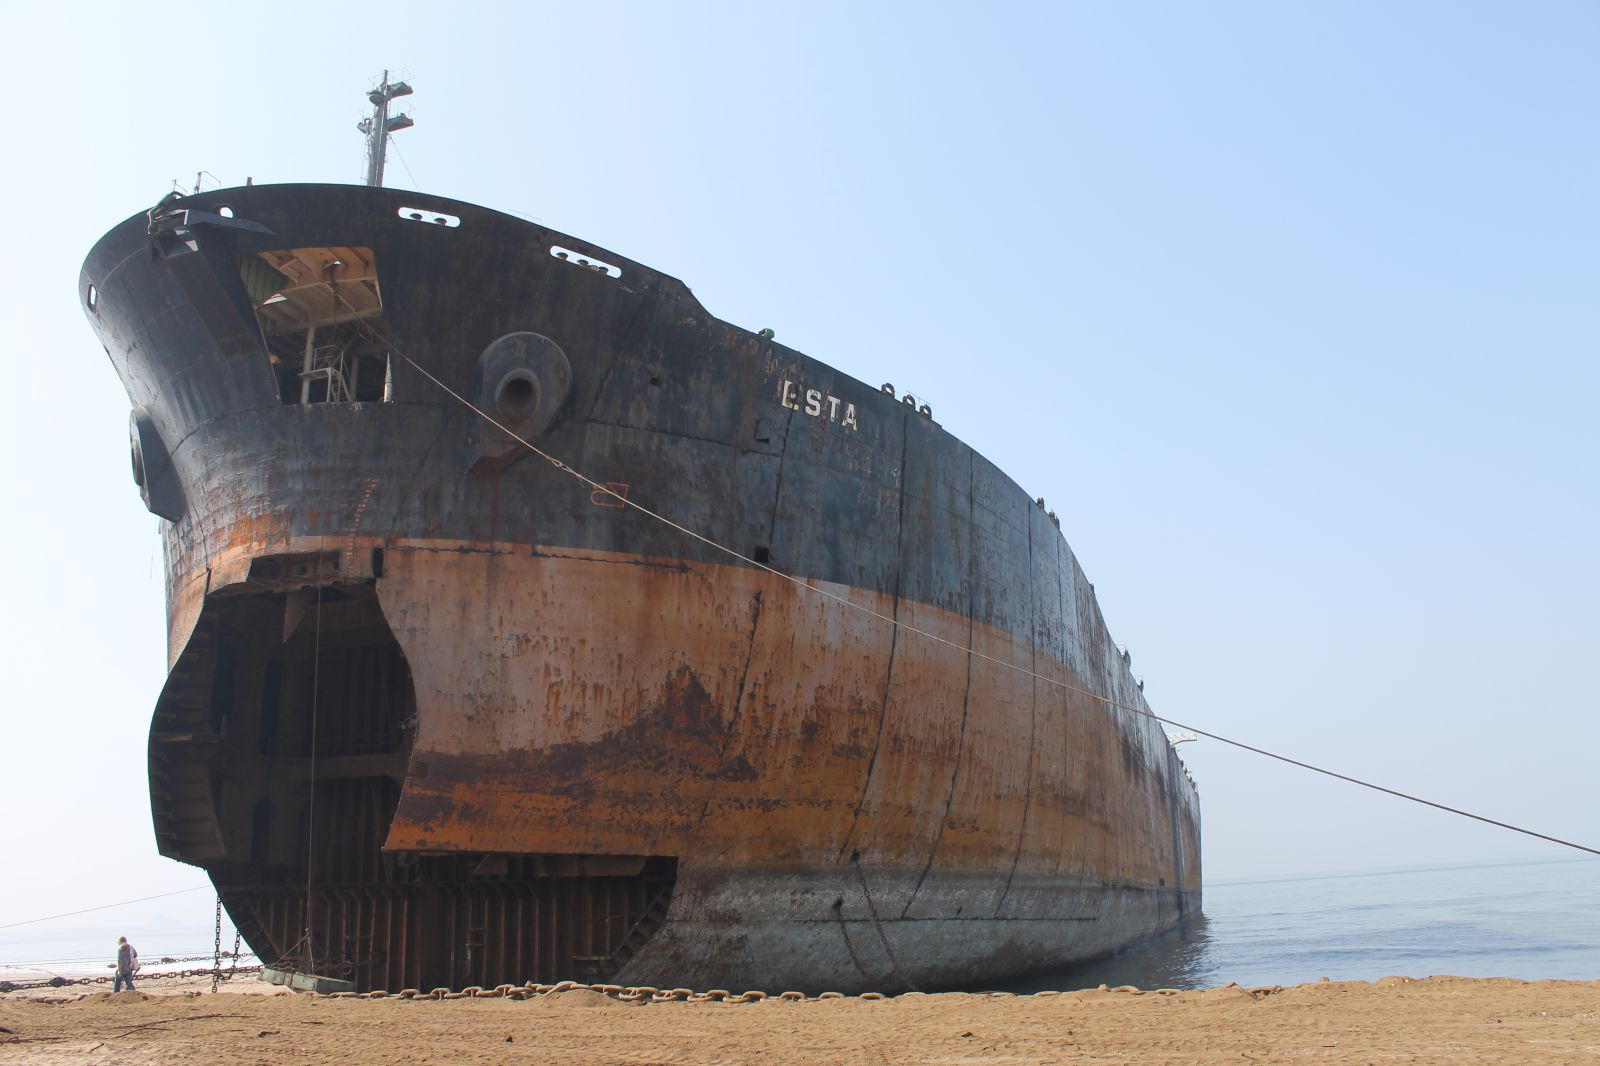 The list of the VESSELS just beached at the Indian Ship Breaking Yards